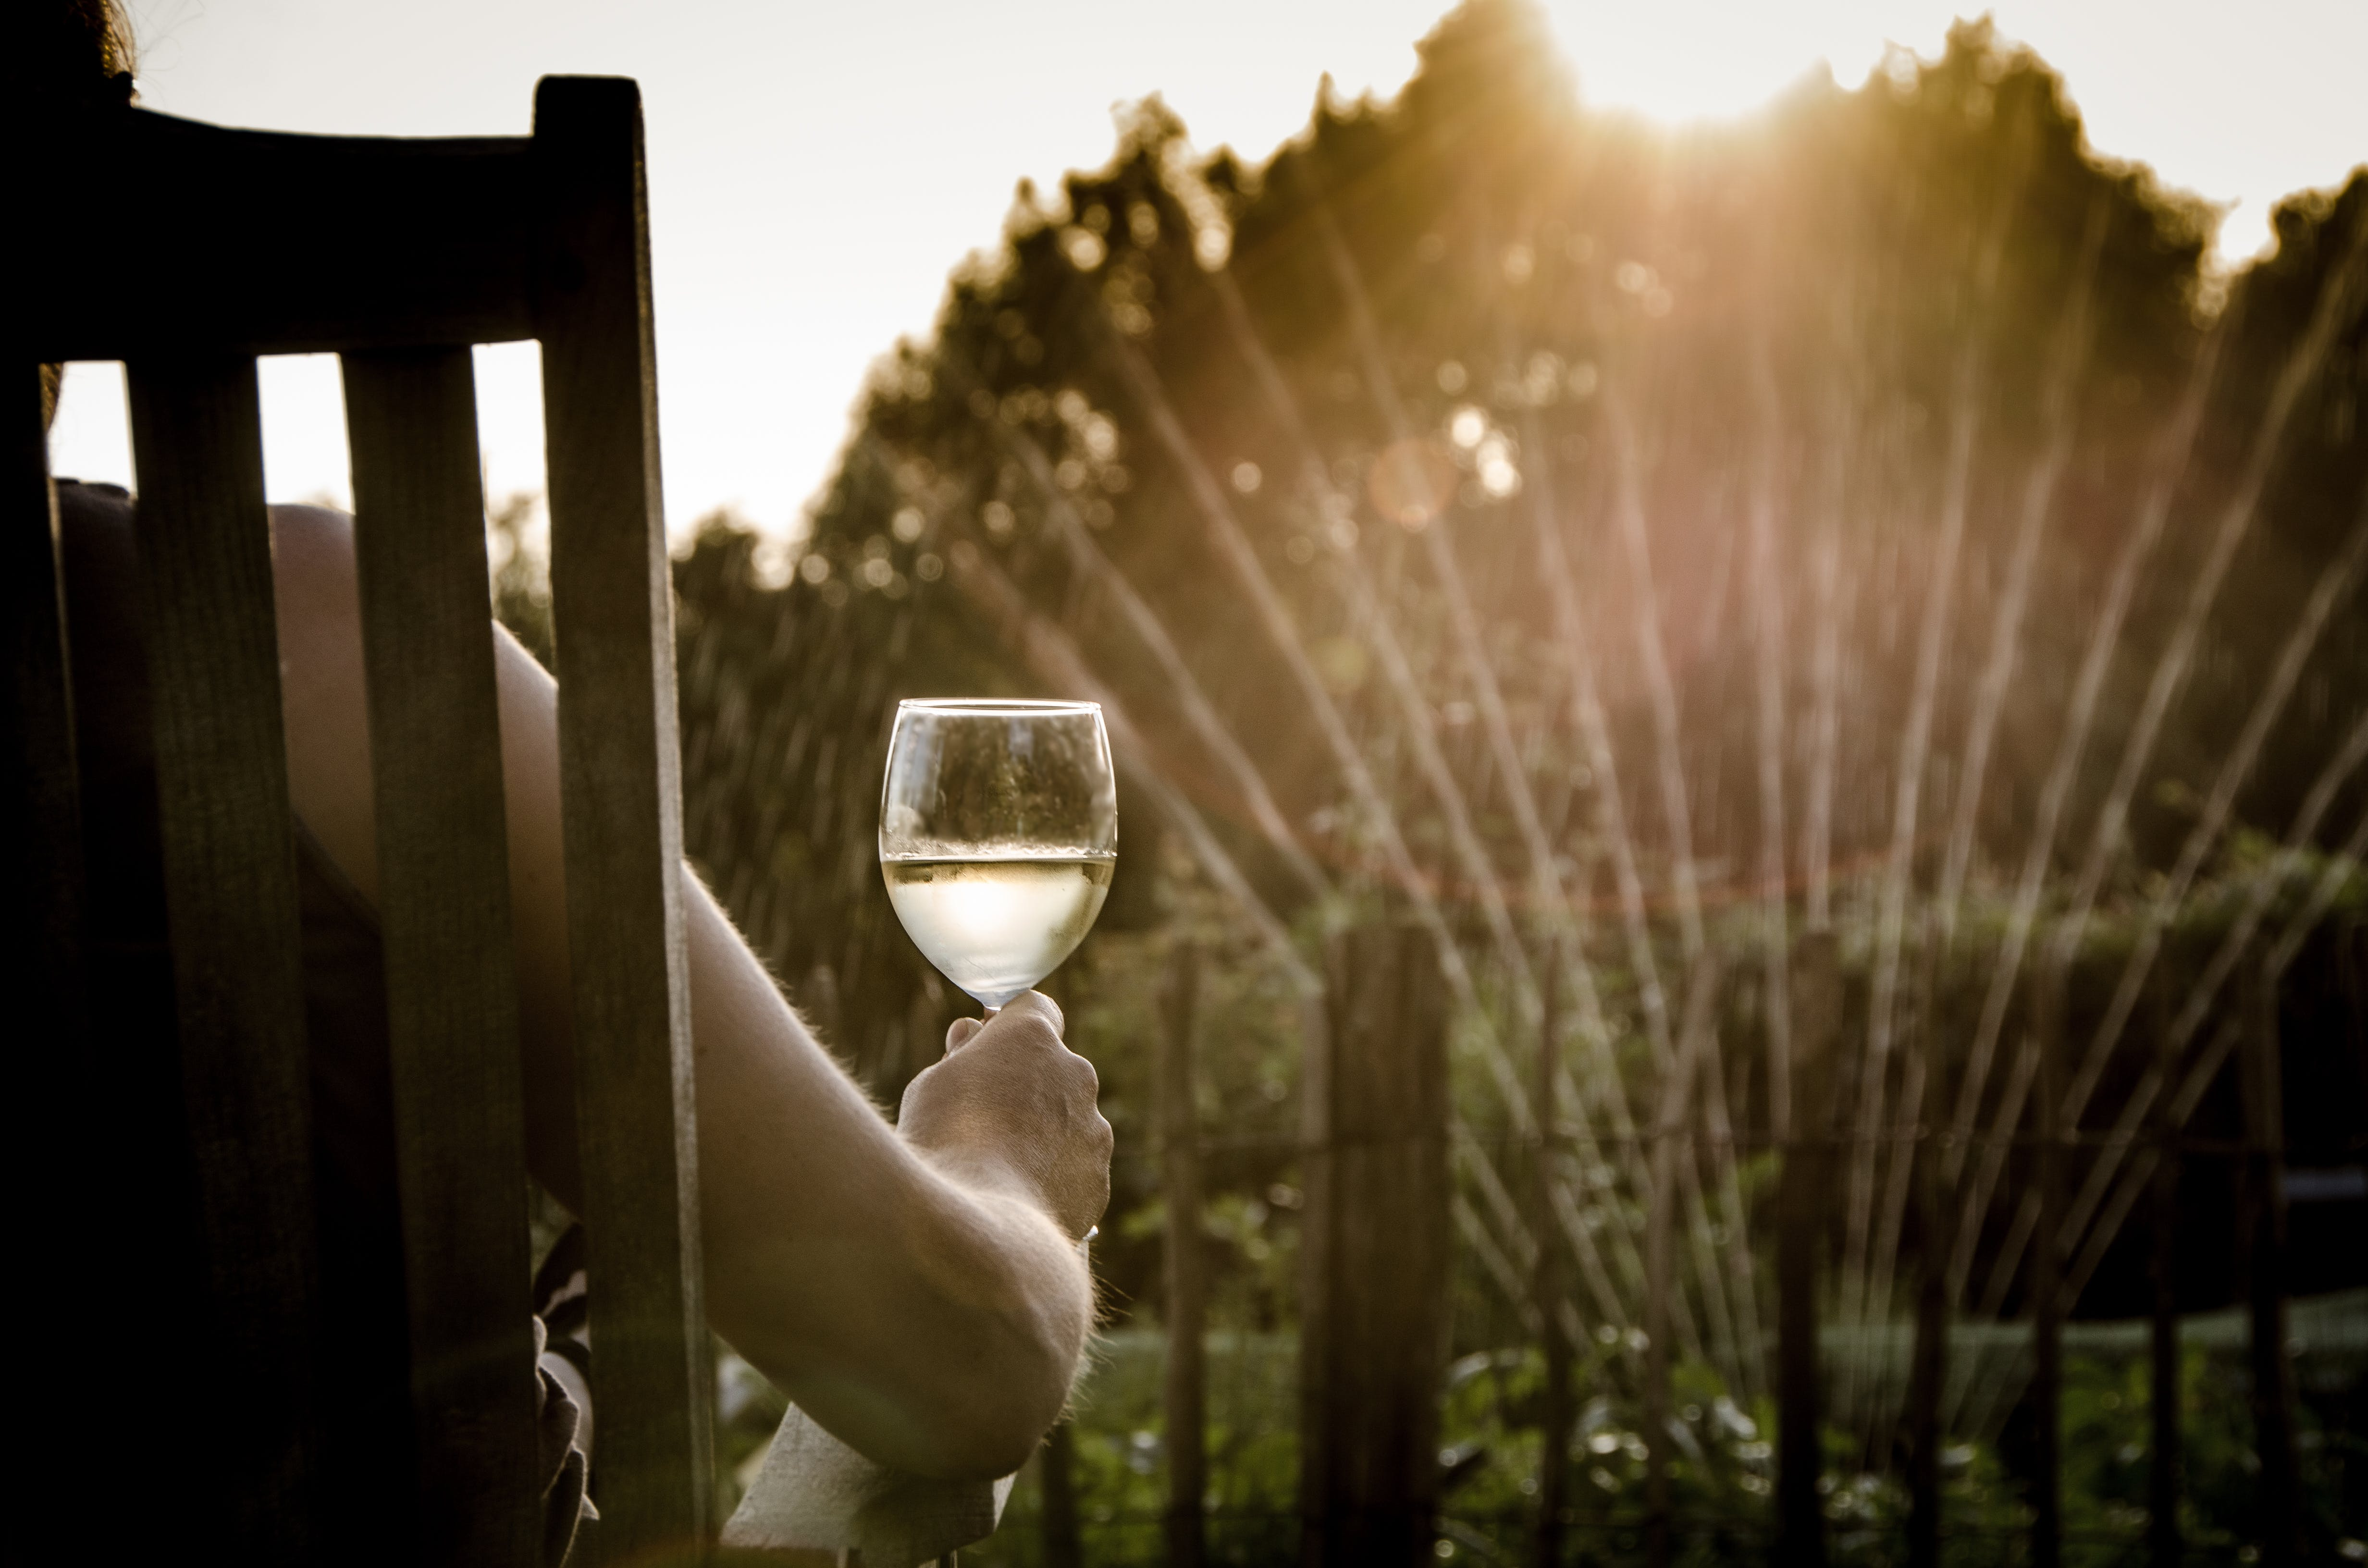 Person Holding Clear Wine Glass Facing Green Leafed Trees during Golden Hour